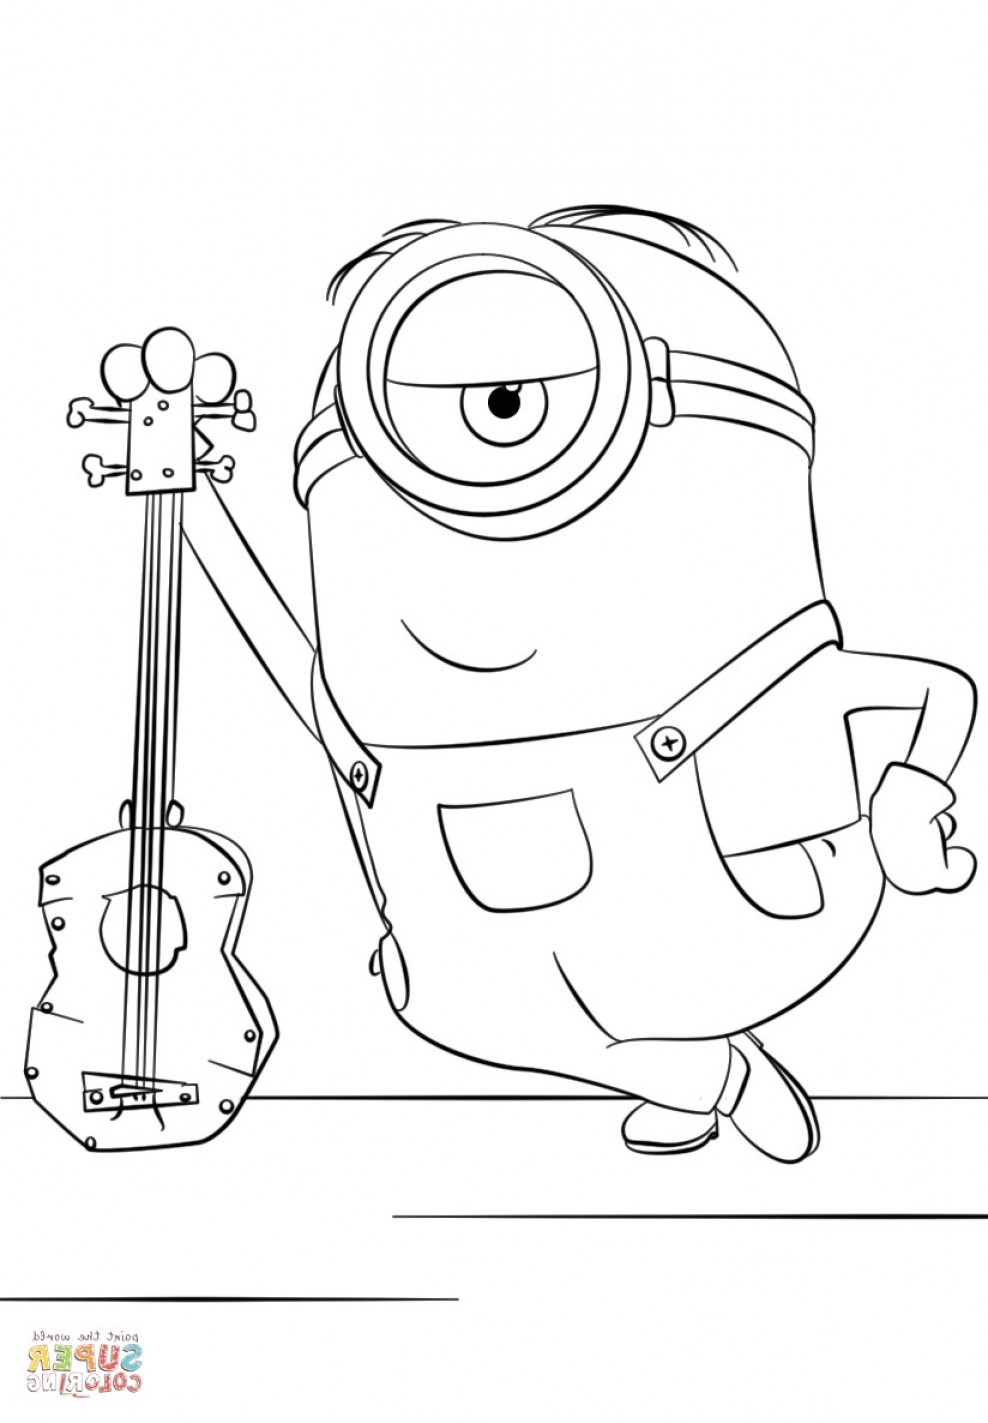 despicable me drawing gru despicable me how to draw gru from the despicable me despicable drawing